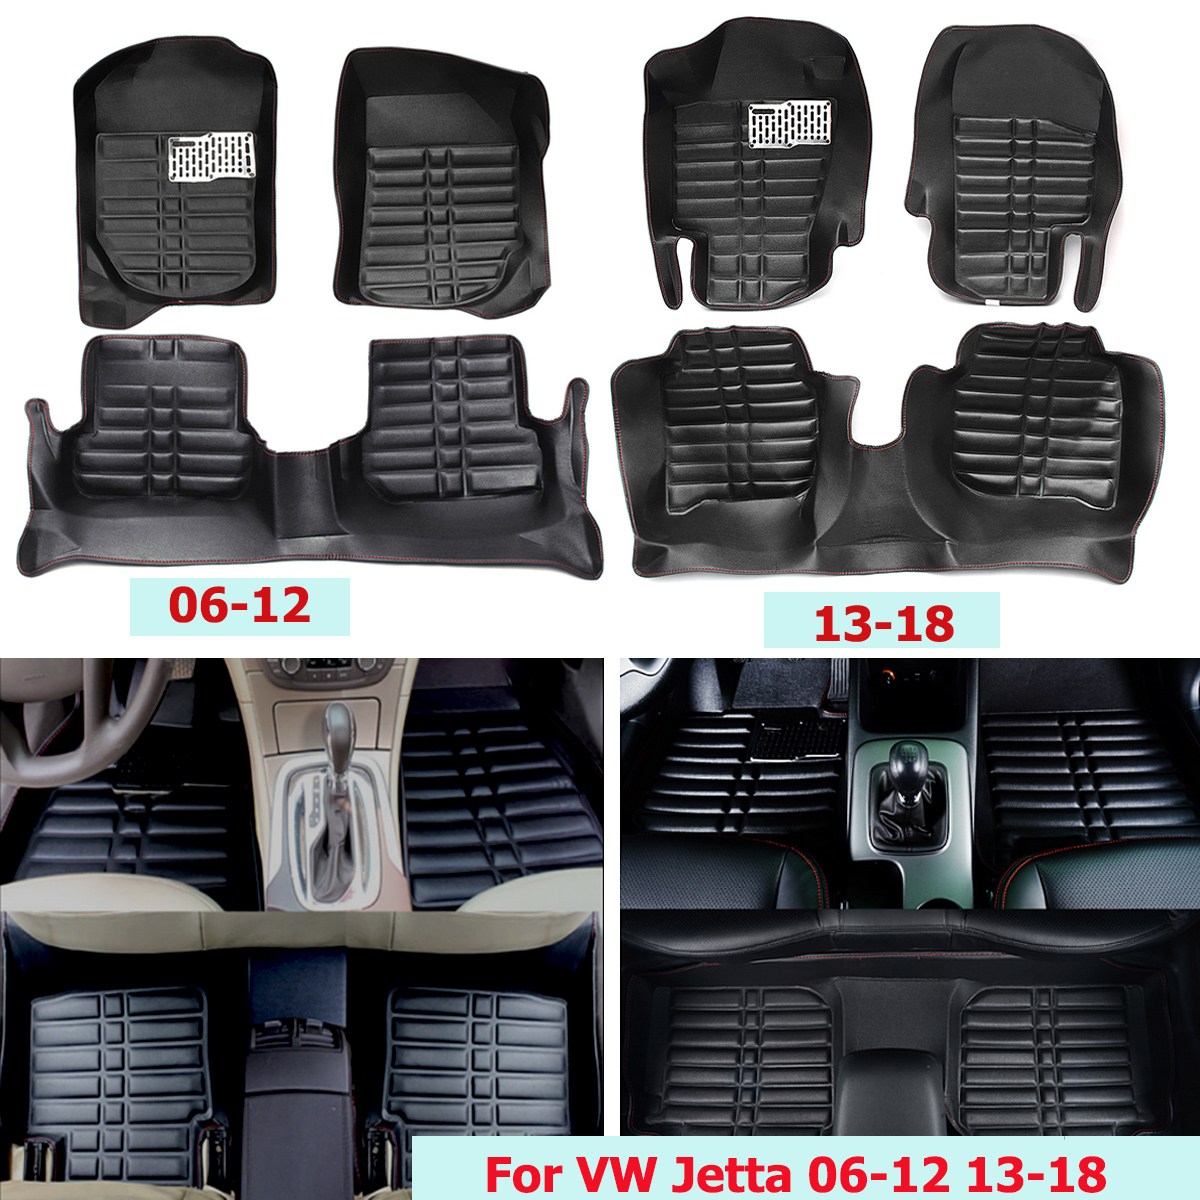 Car Floor Mat Foot Pad Front Rear Liner Non-slip Carpet Anti-slip Protective Interior Cover for VW Jetta 2006-2012 2013-2018 auto vehicle floor mat full set ridged anti slip universal car fit front rear 4 piece pvc rubber floor mat waterproof non slip